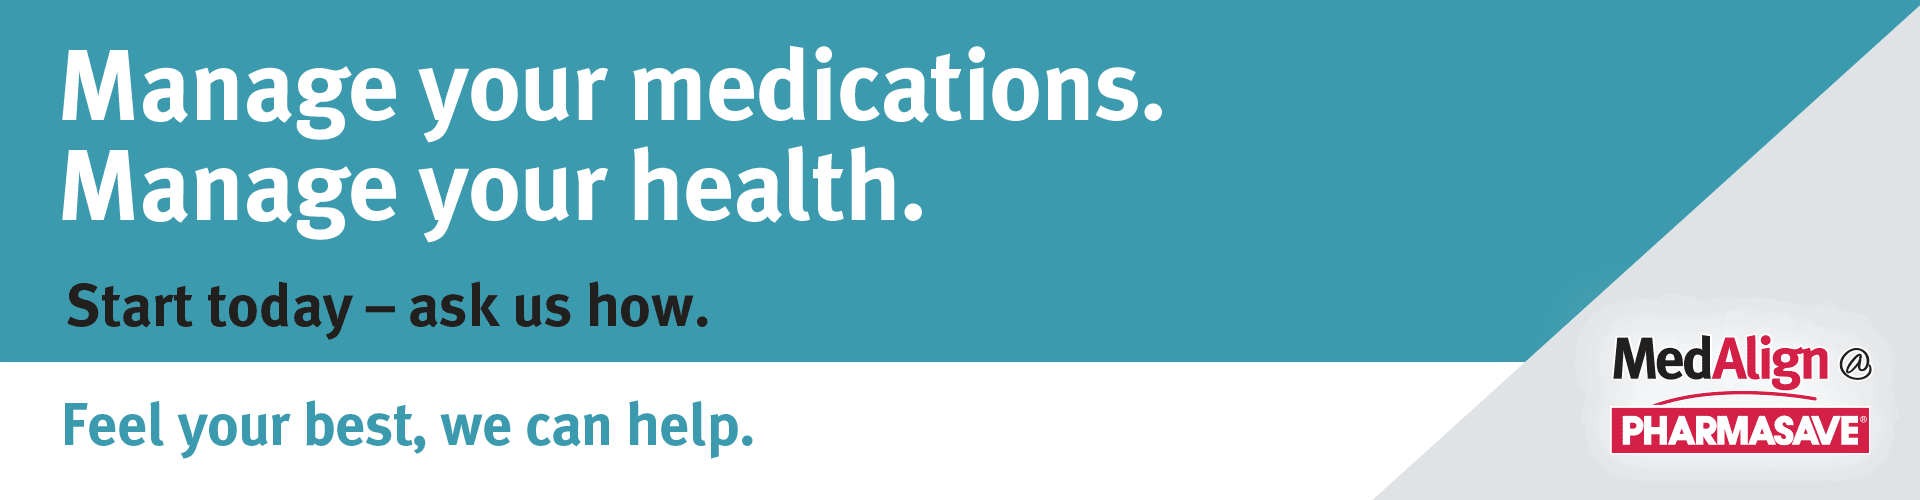 Manage your medications, manage your health.